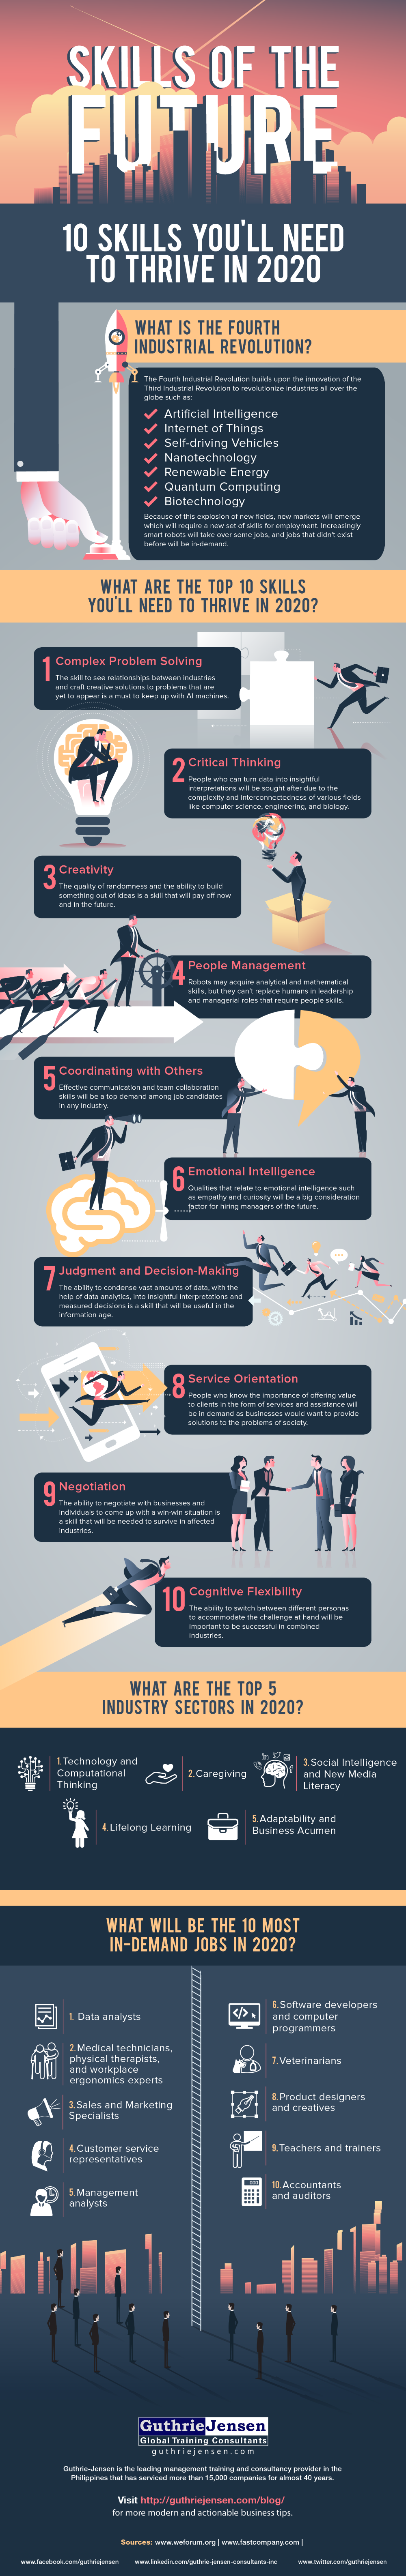 Insights The Guthrie Jensen Blog Skills Of The Future 10 Skills You Ll Need To Thrive In 2020 Infographic In 2020 Life Skills Skills Career Development